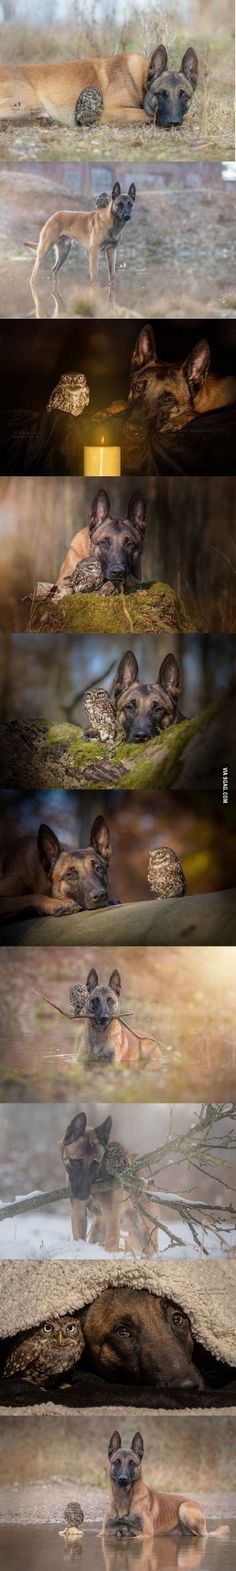 Friendship between a dog and an owl